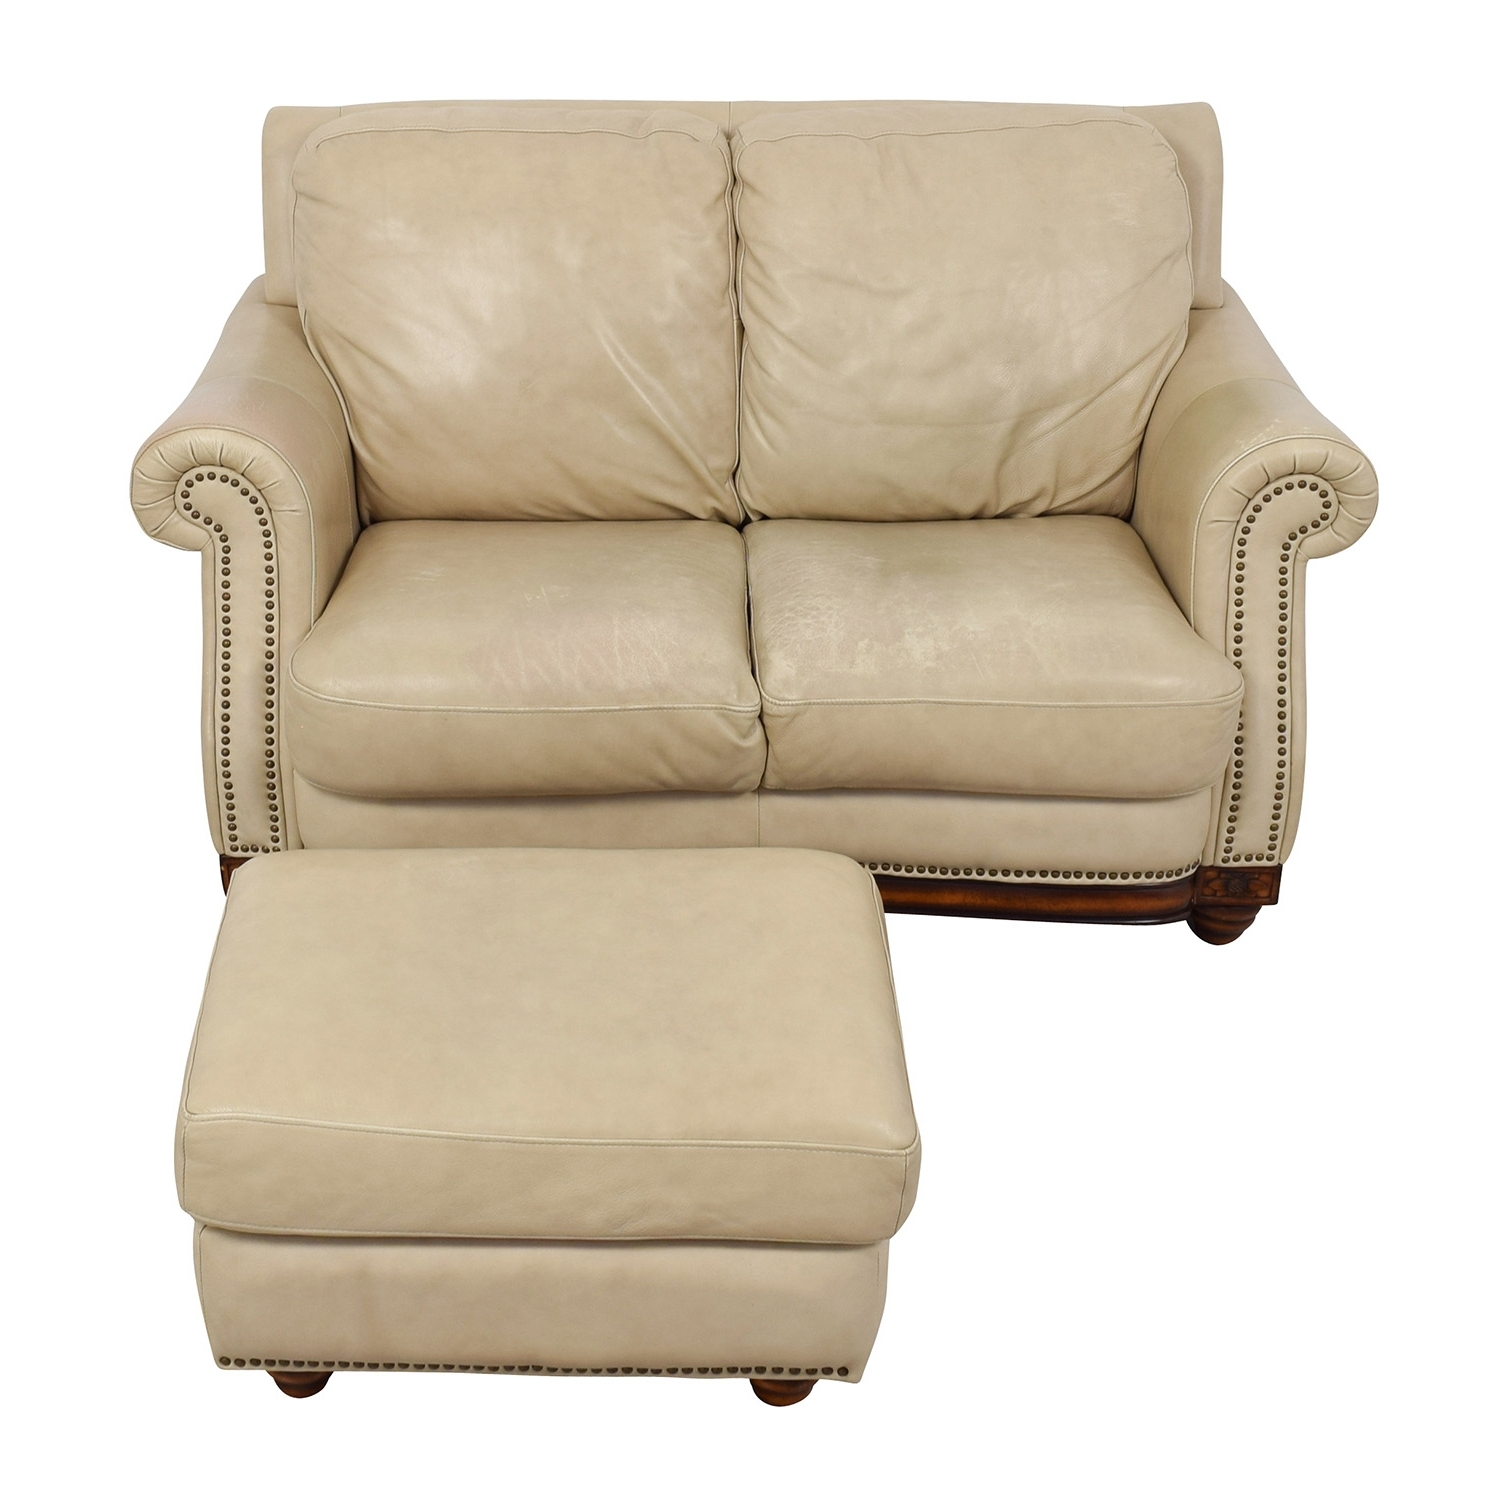 [%74% Off – Raymour & Flanigan Raymour & Flanigan Studded Tan Intended For Recent Loveseats With Ottoman|Loveseats With Ottoman Regarding Most Current 74% Off – Raymour & Flanigan Raymour & Flanigan Studded Tan|2019 Loveseats With Ottoman Regarding 74% Off – Raymour & Flanigan Raymour & Flanigan Studded Tan|Preferred 74% Off – Raymour & Flanigan Raymour & Flanigan Studded Tan With Regard To Loveseats With Ottoman%] (View 3 of 20)